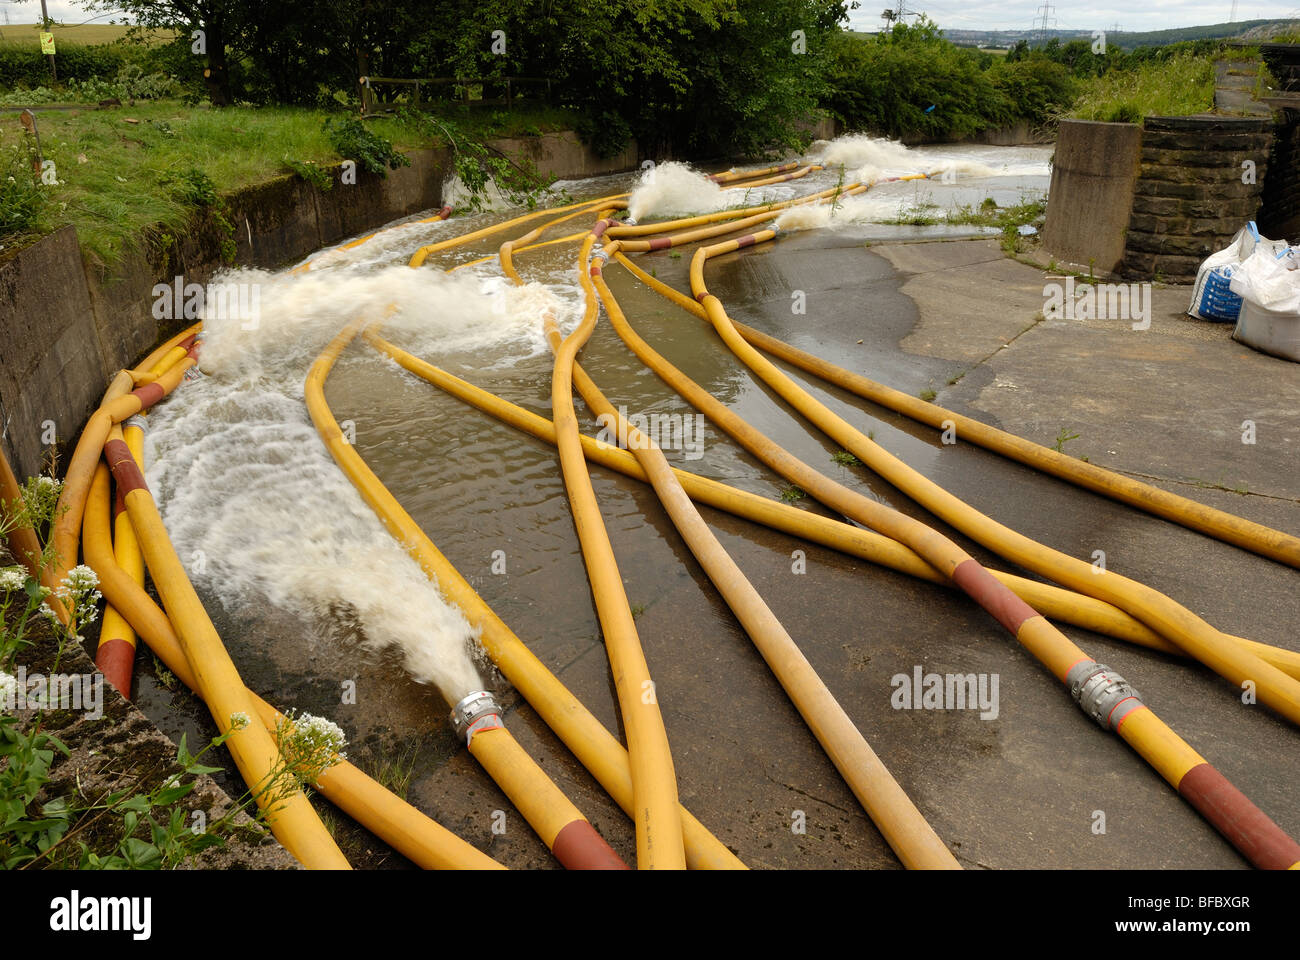 Fire Amp Rescue Service High Volume Pumps And Hose Used To